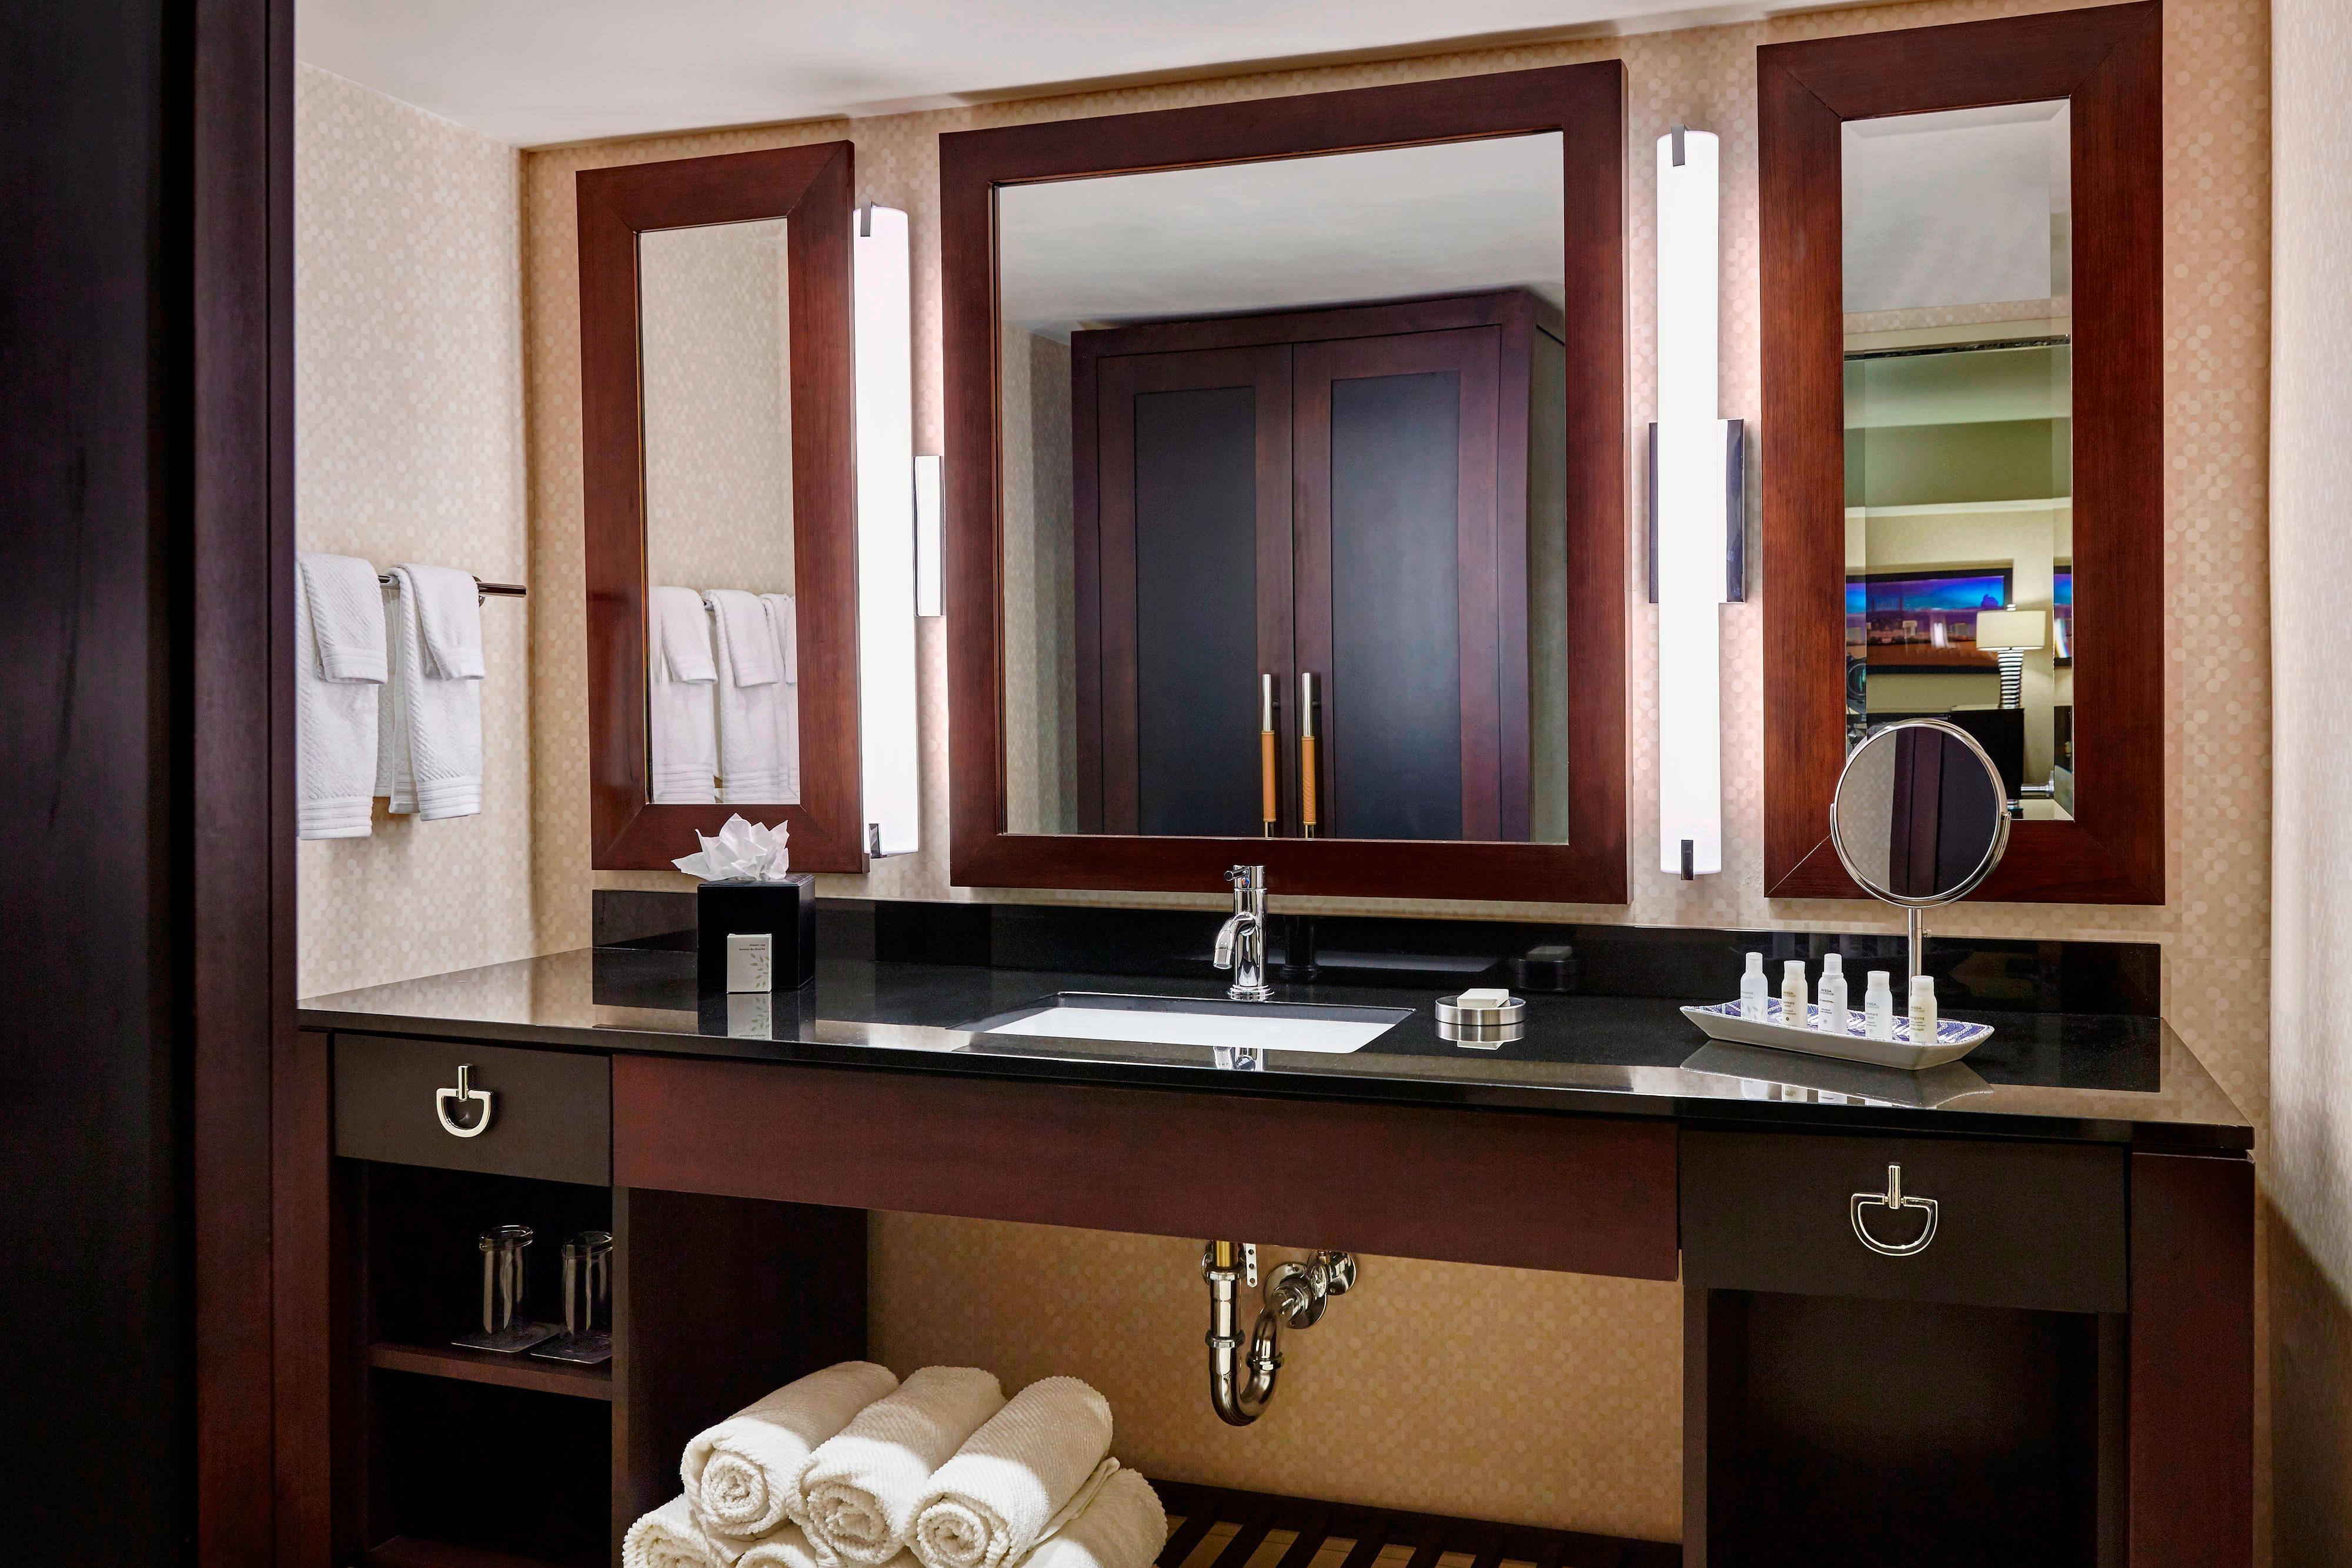 Executive Suite Bathroom Renaissance Phoenix